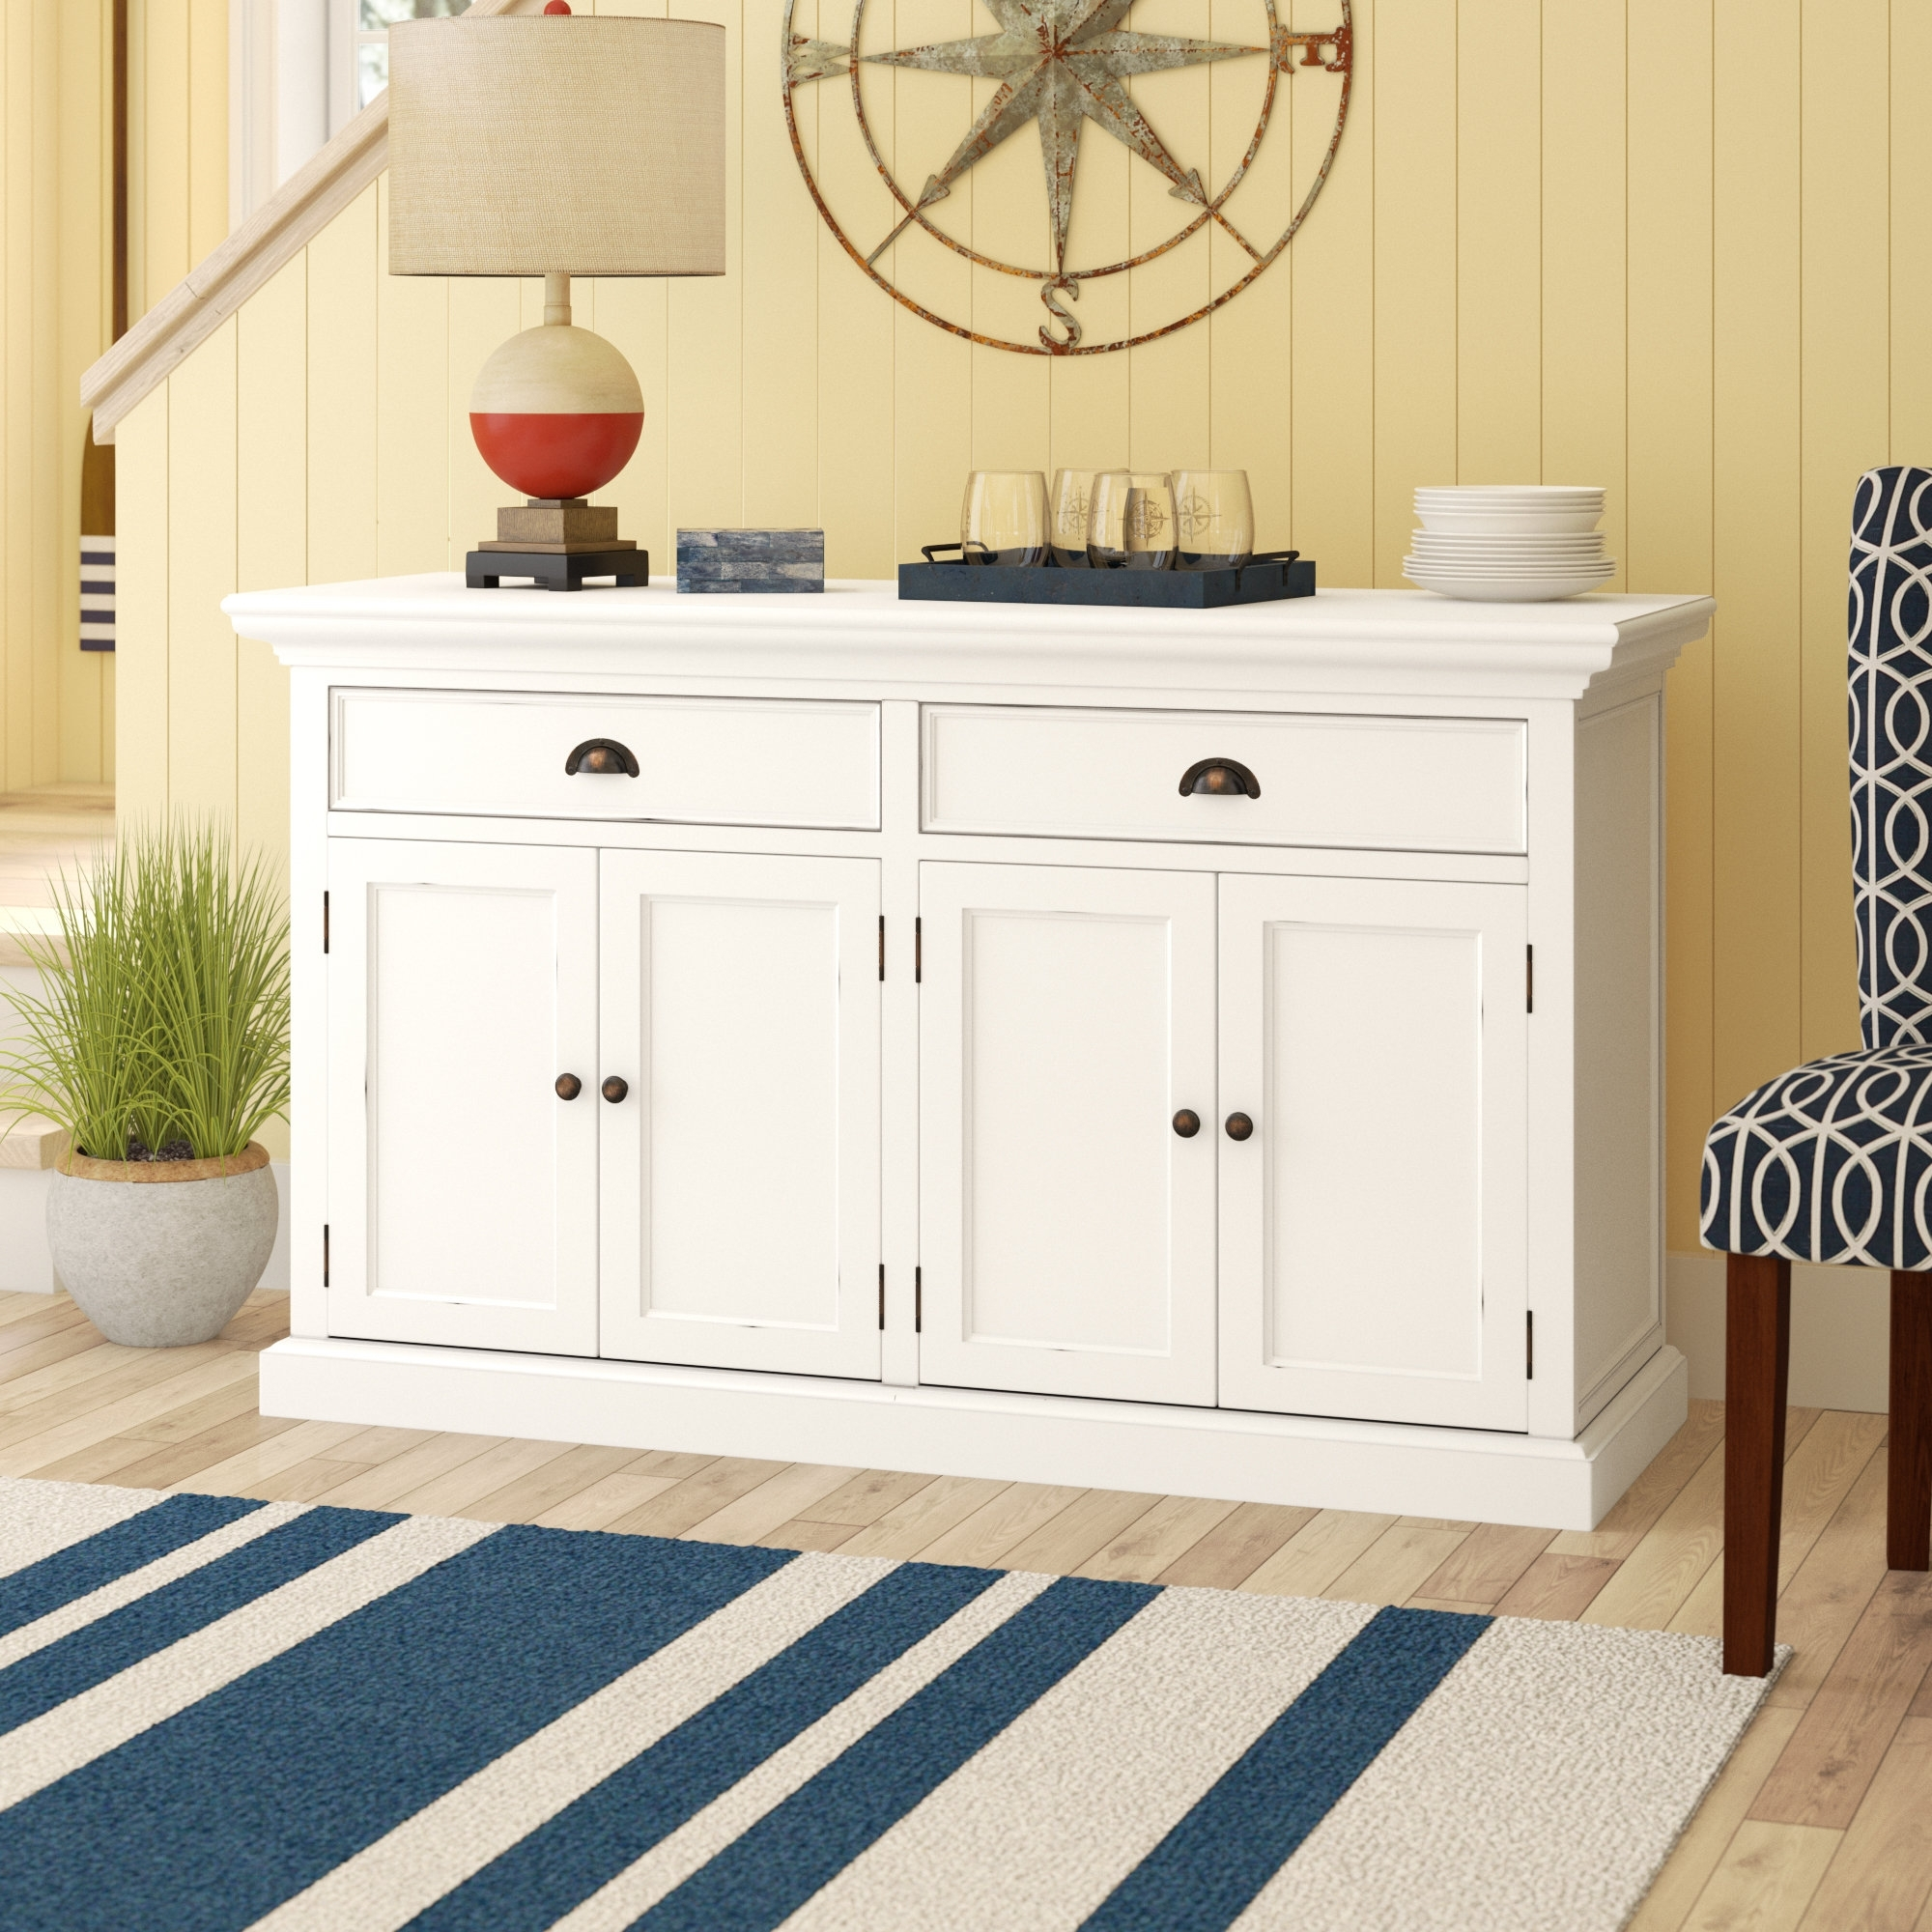 Breakwater Bay Fairmead Sideboard & Reviews | Wayfair in Parrish Sideboards (Image 7 of 30)